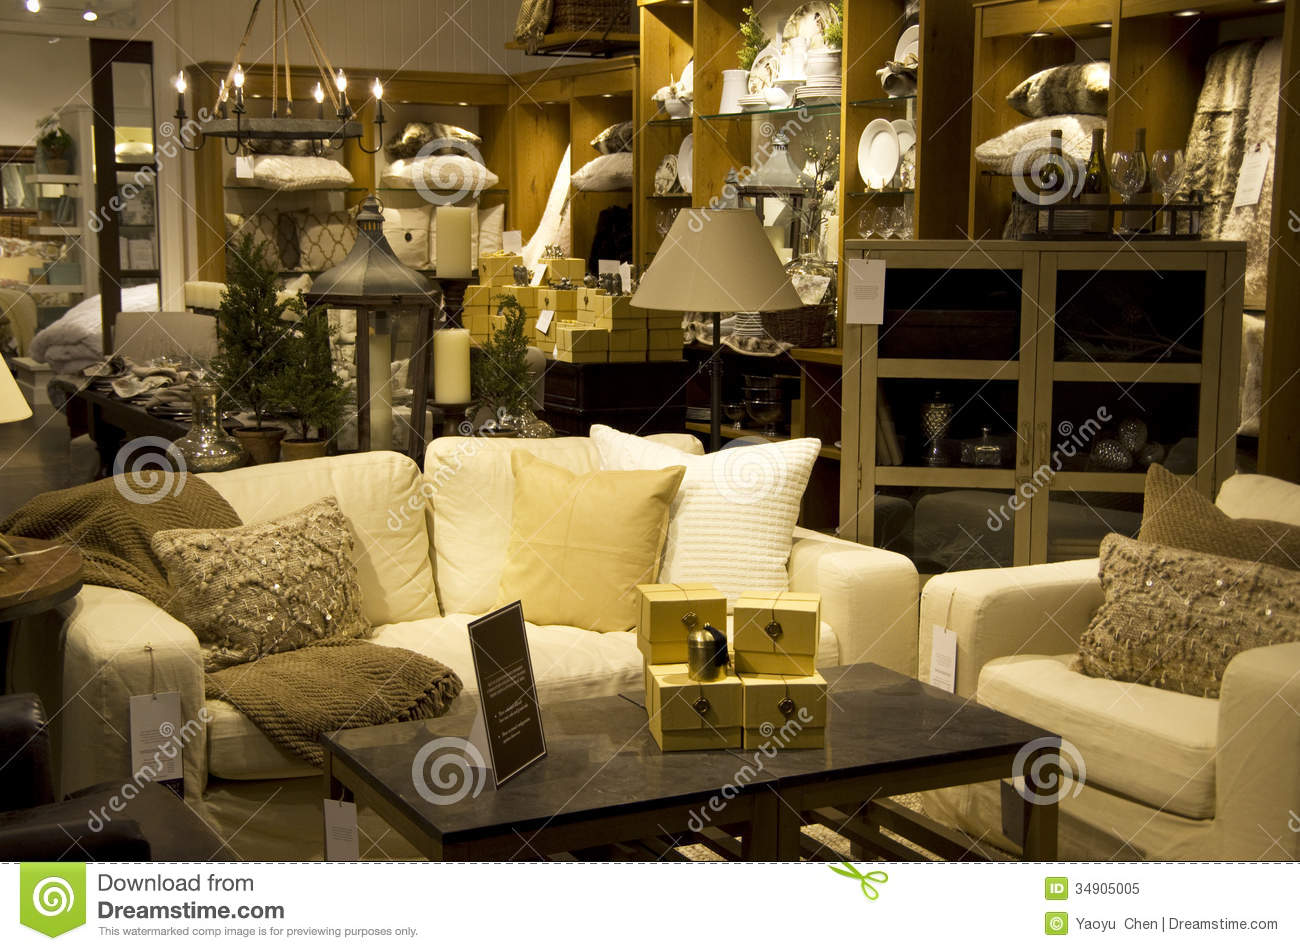 Luxury furniture home decor store royalty free stock photo for Furniture and design stores